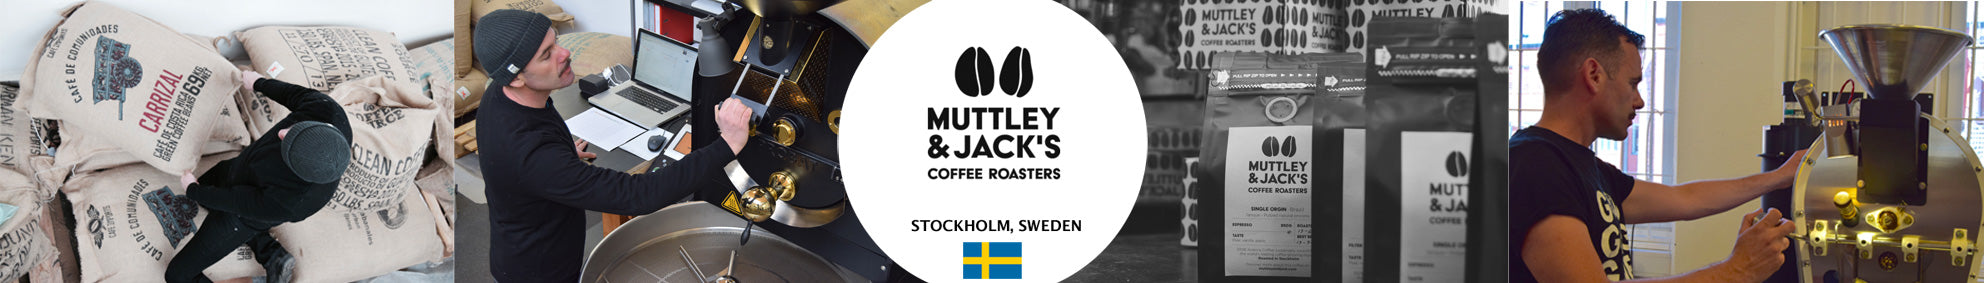 Subscription Coffee Roaster - Muttley & Jacks